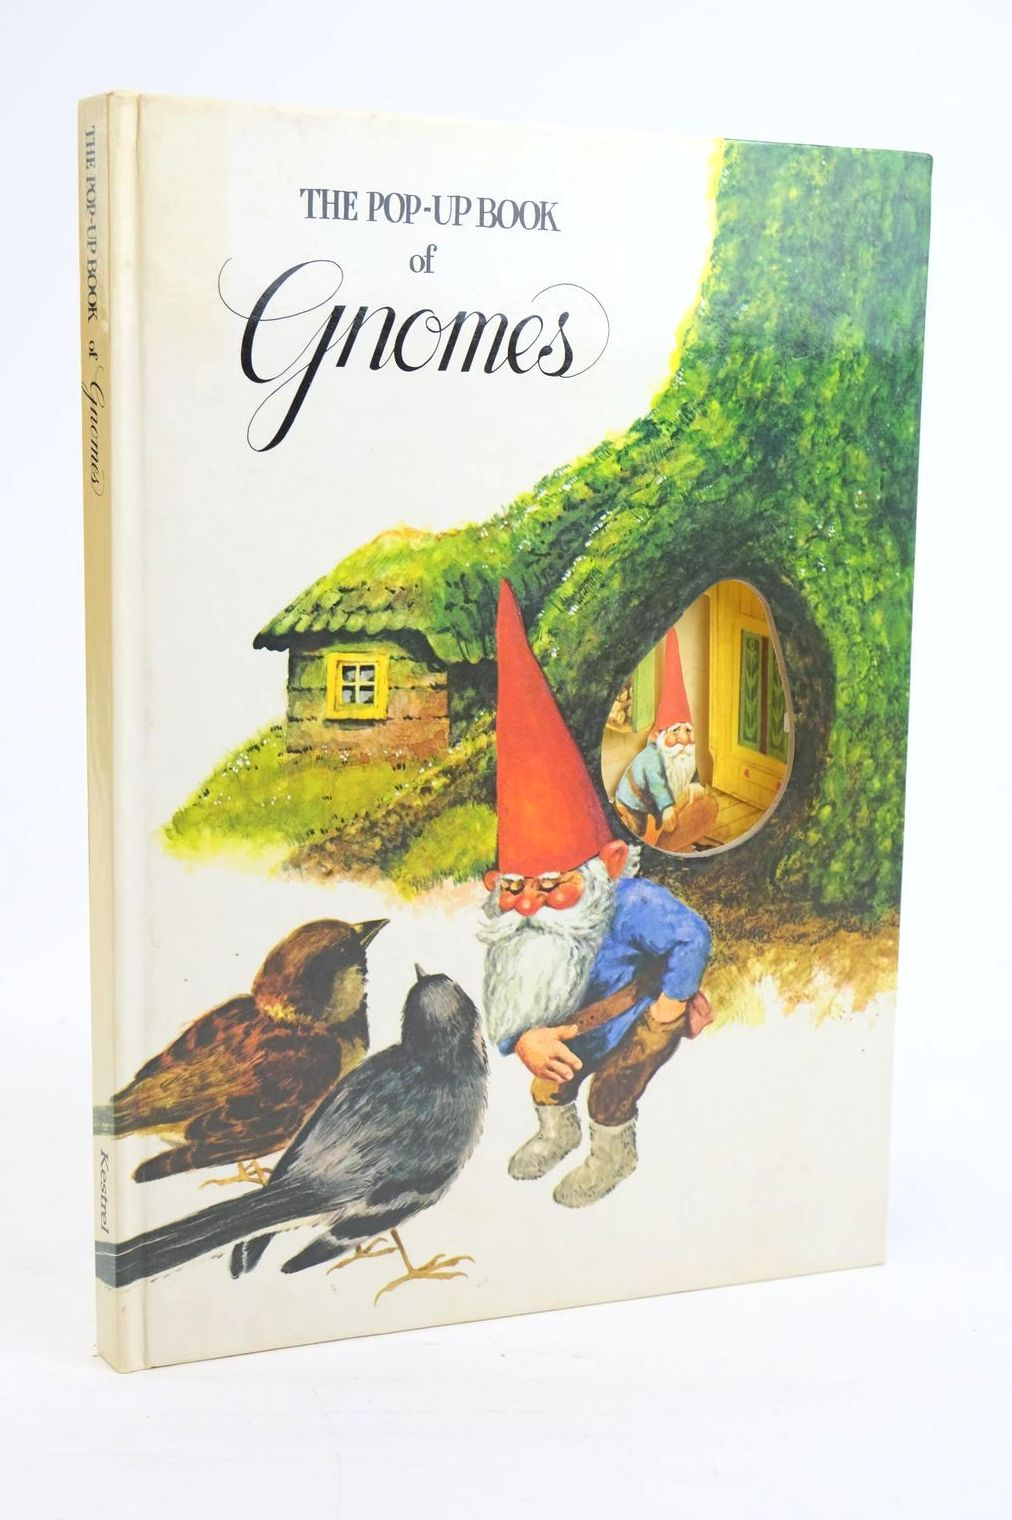 Photo of THE POP-UP BOOK OF GNOMES written by Huygen, Wil illustrated by Poortvliet, Rien published by Kestrel Books (STOCK CODE: 1319991)  for sale by Stella & Rose's Books